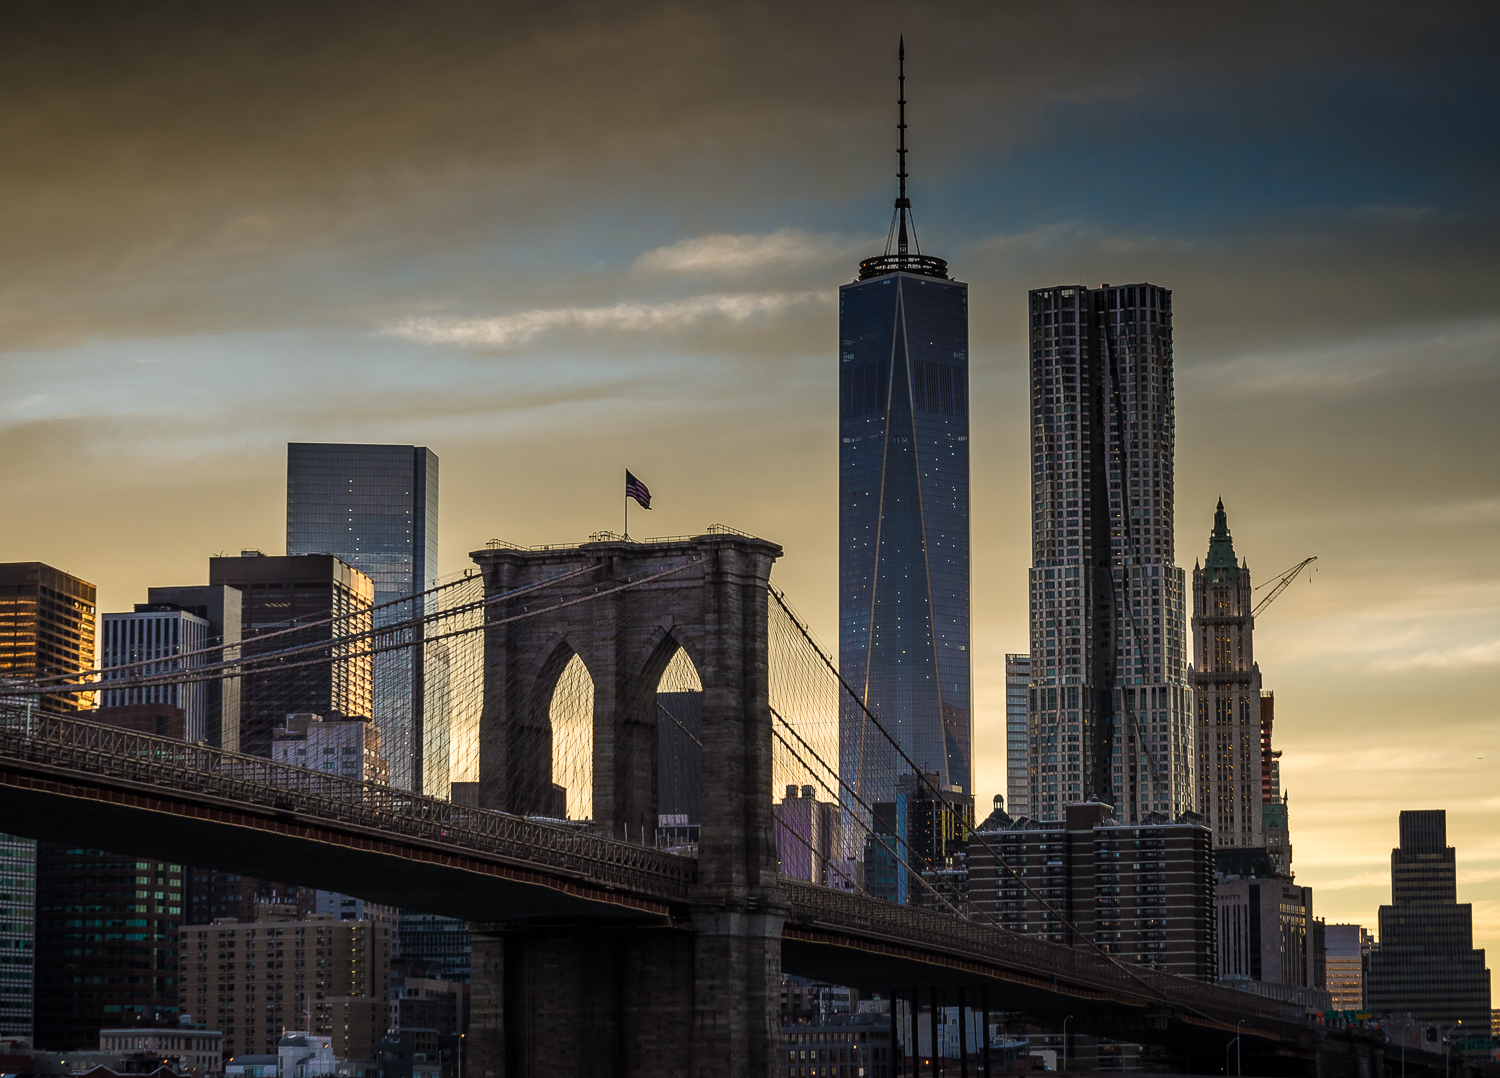 Under the Brooklyn Bridge - September 14th 2014